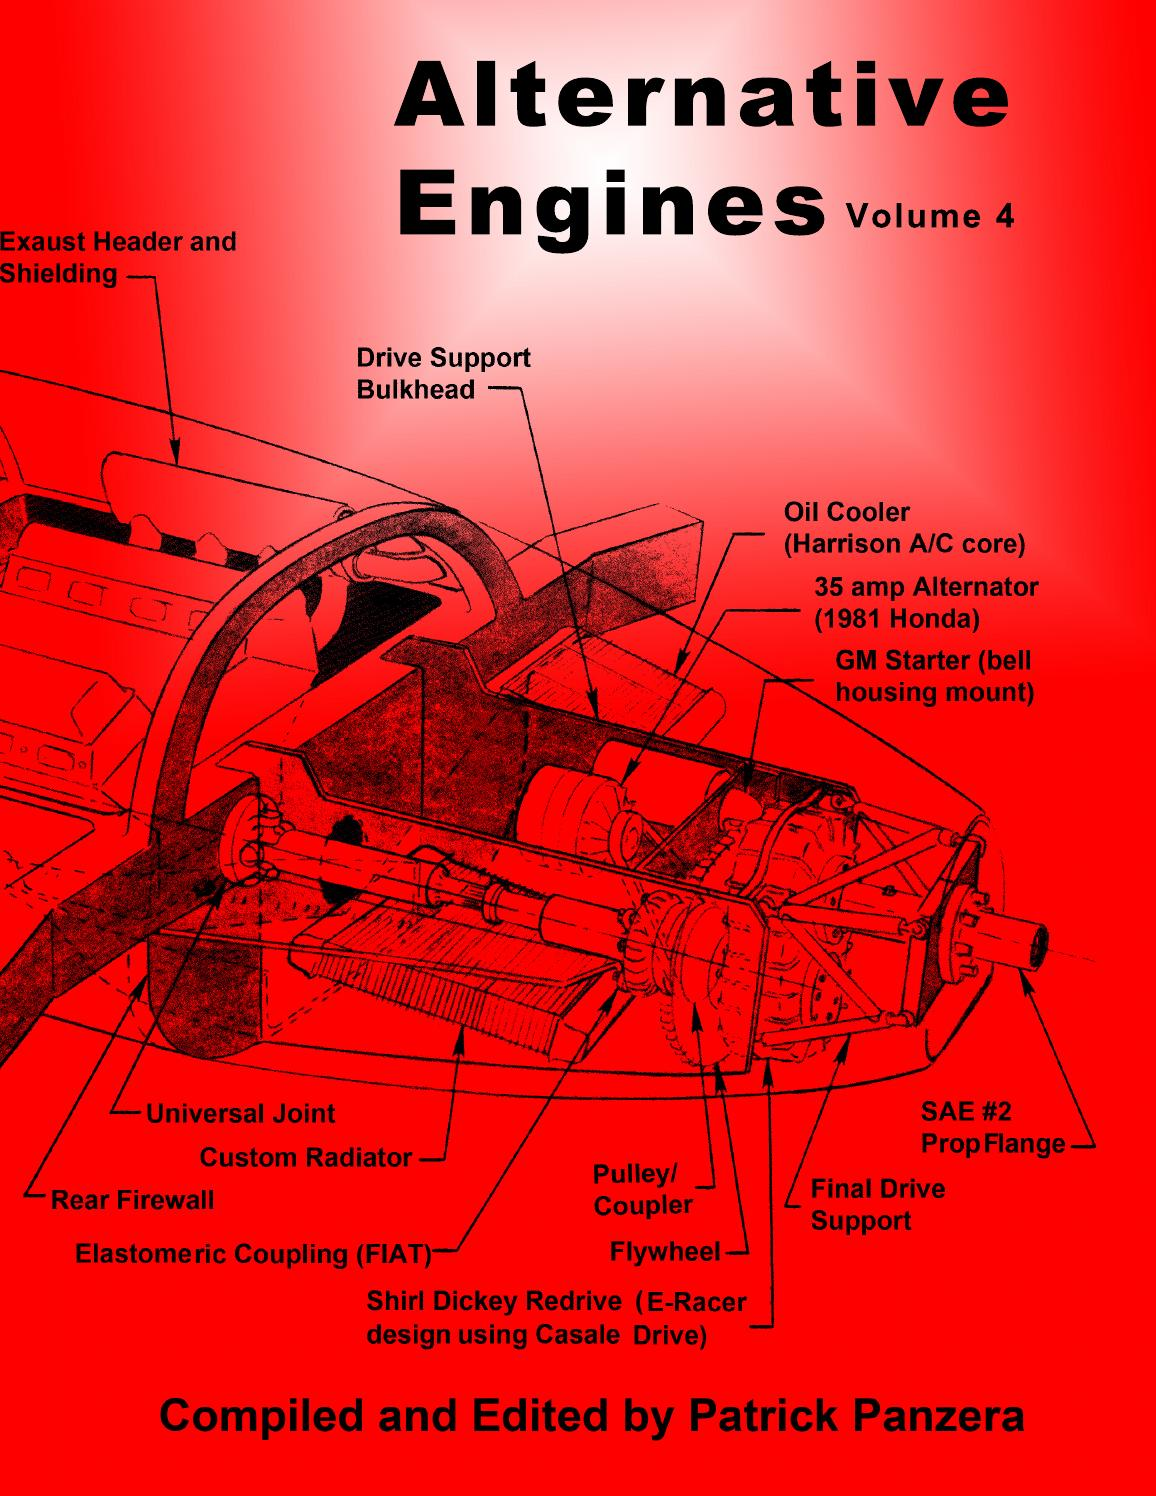 page_1 alternative engines volume 4 preview by editor, patrick panzera Chevrolet Engine Wiring Diagram at gsmportal.co